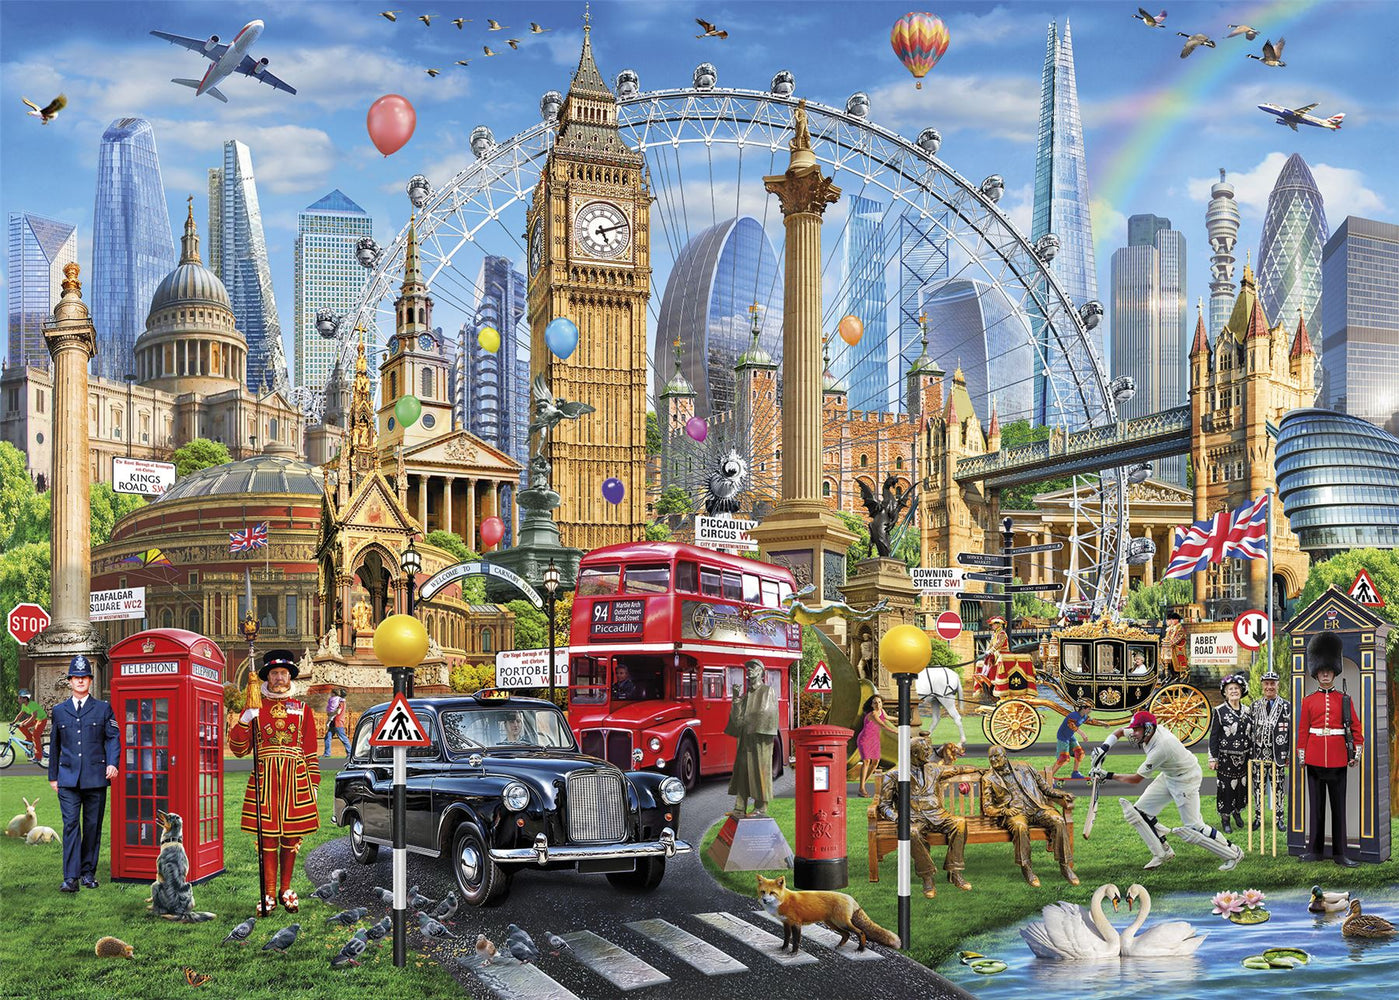 New 2020 Gibsons London Calling 1000 piece Jigsaw Puzzle - All Jigsaw Puzzles